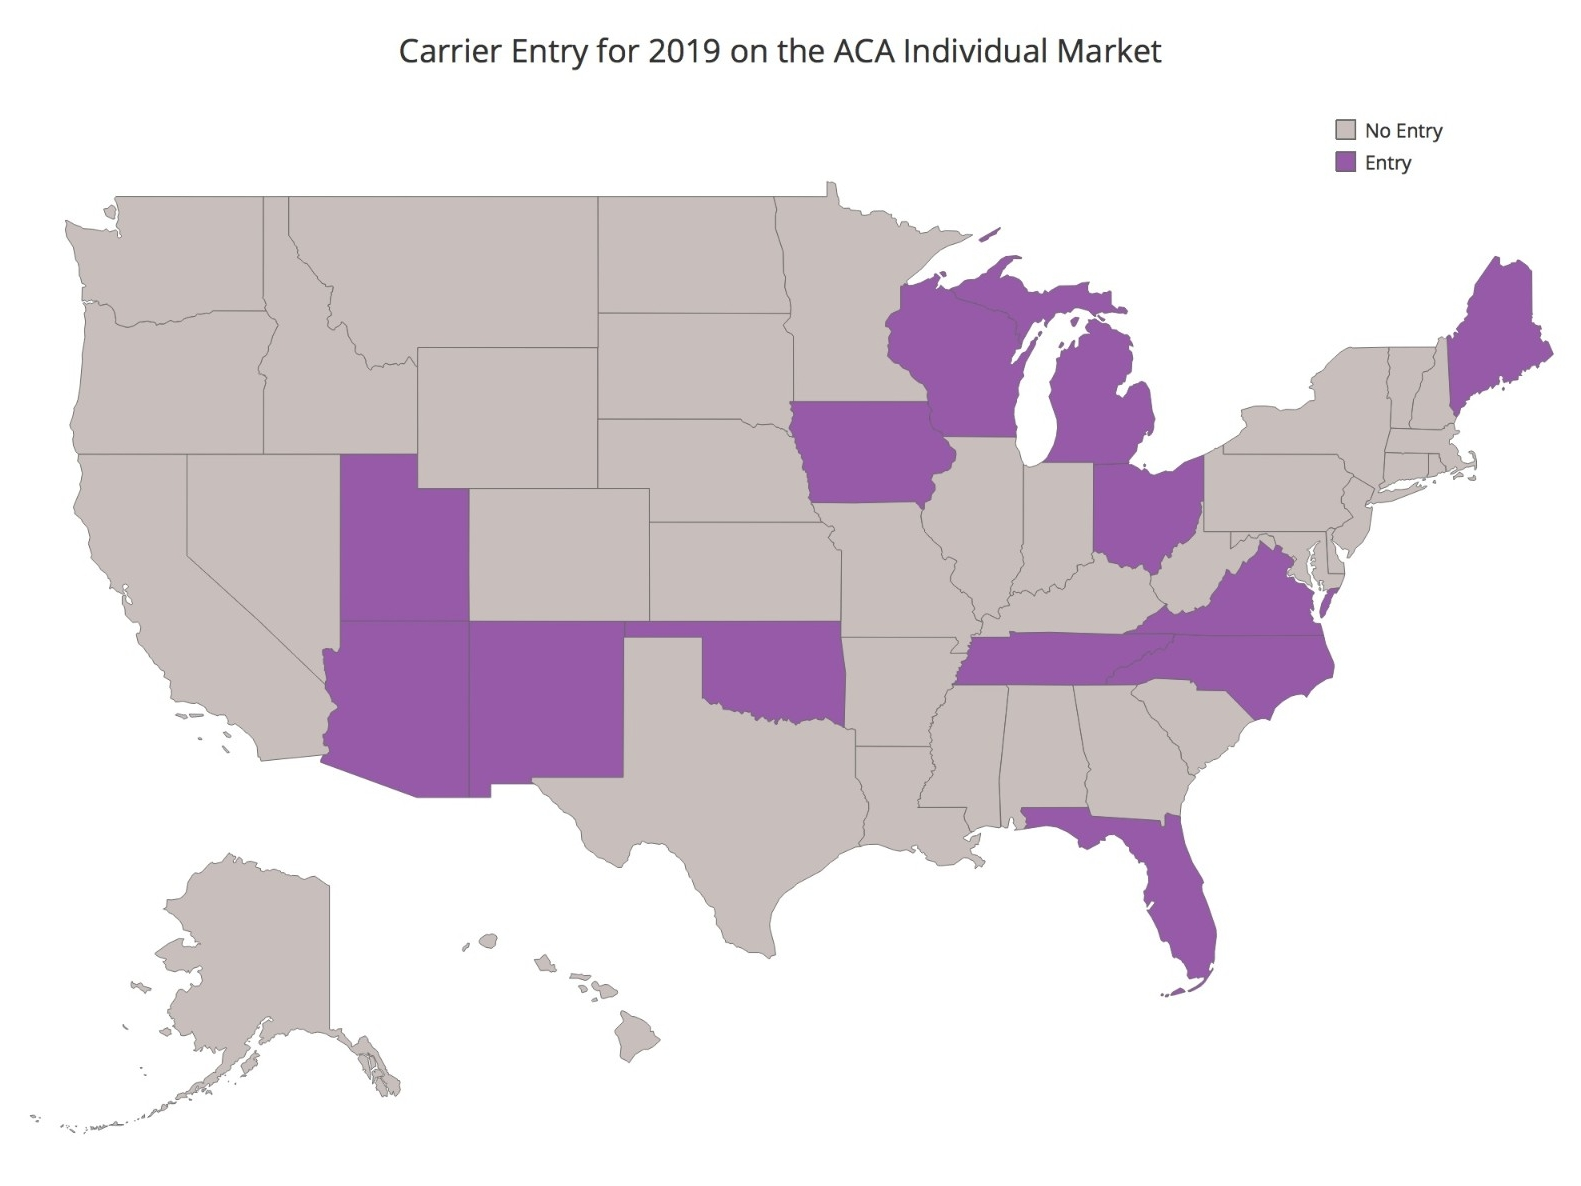 Carrier Entry for 2019 on ACA Individual Market